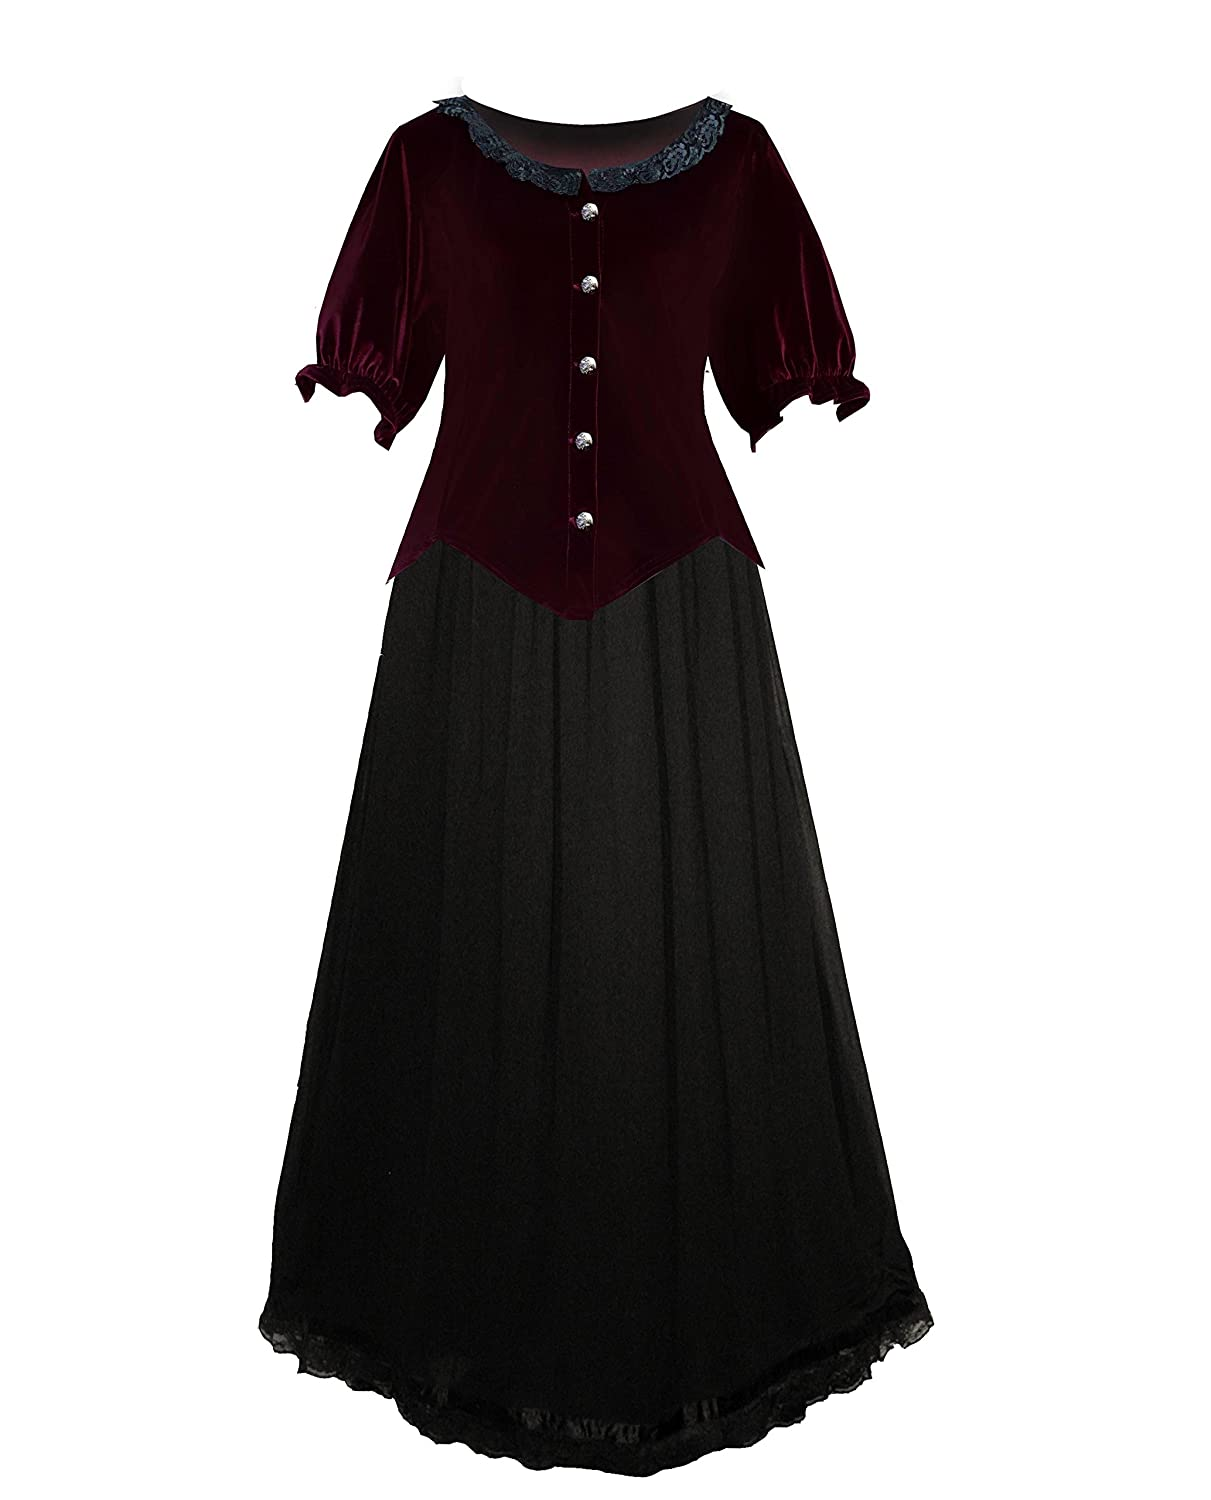 Victorian Costumes: Dresses, Saloon Girls, Southern Belle, Witch Victorian Steampunk Gothic Renaissance Velvet Top & Long Skirt $89.00 AT vintagedancer.com